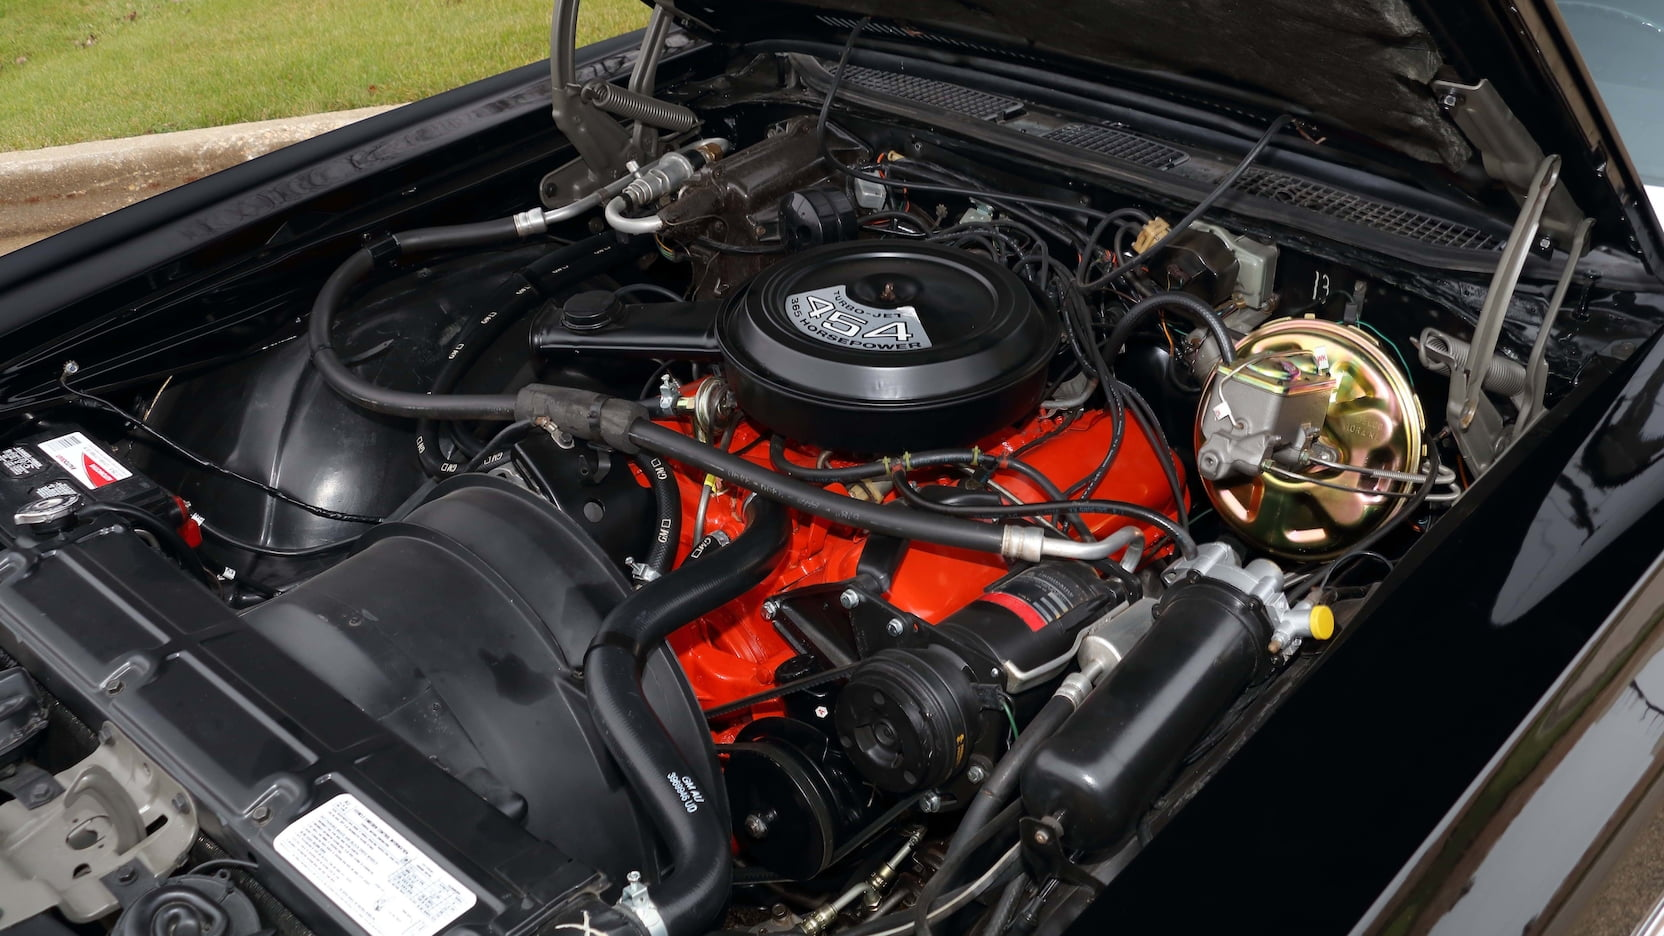 1971 Monte Carlo SS 454 engine